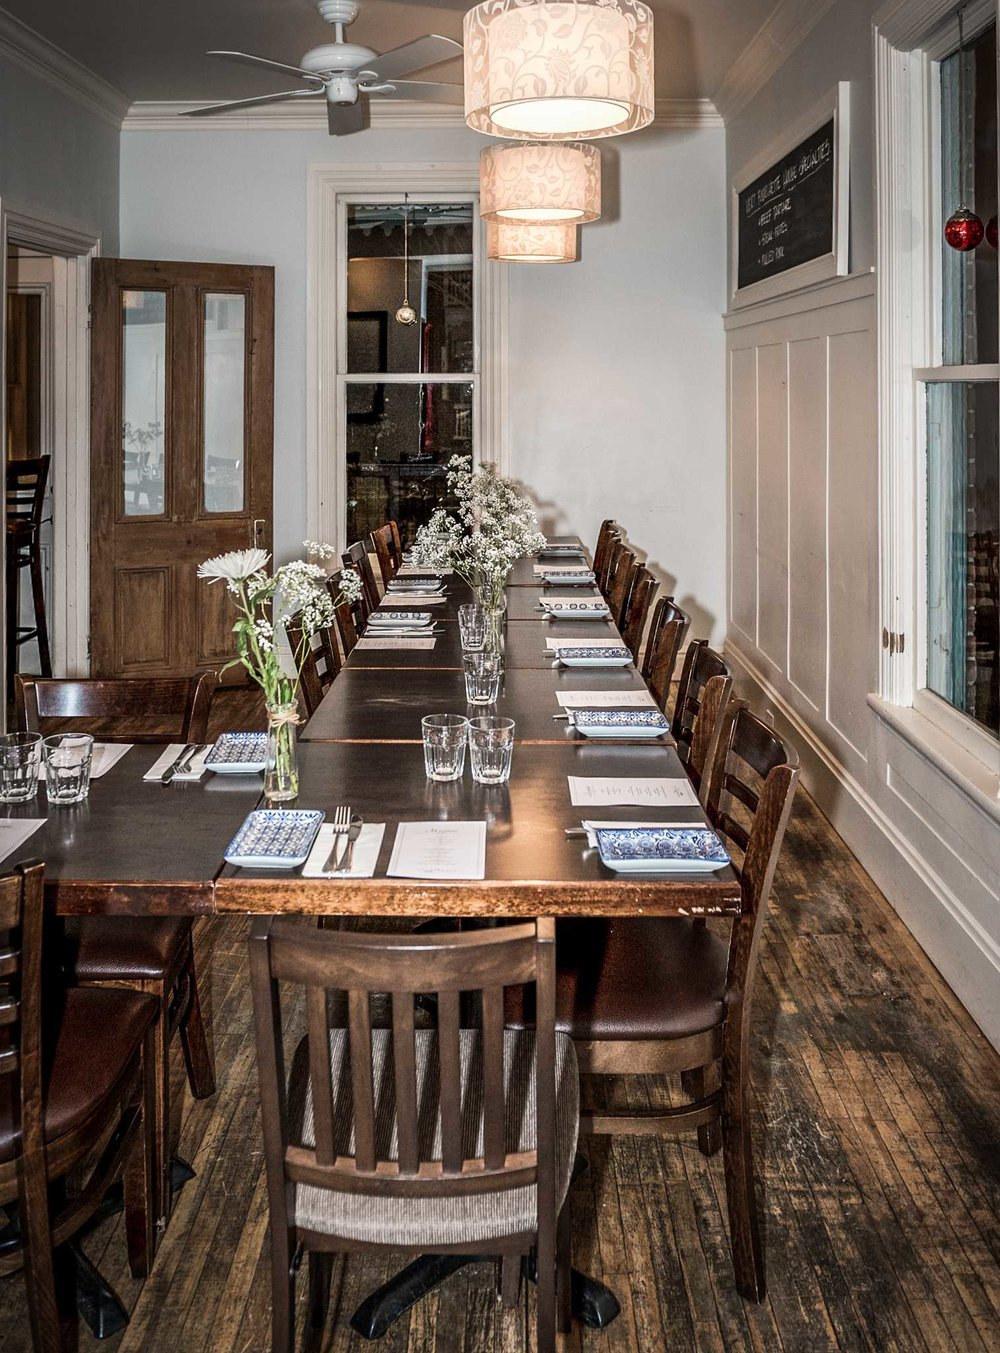 [private dinning] - Our restaurant transforms into a Private Dining setting on selected evenings.(Sunday through Thursday – winter)(Sunday through Friday – summer)[minimums]We do require a minimum of 15 guests to reserve the restaurant for a private event (36 guests max). If your numbers fall short of the required number – a minimum spend may be applied. Our hostesses will contact you 24 hours prior to the function in order to confirm numbers. You may be charged for confirmed guests who do not attend.[menus]The menu for your event will be created and personalized to best suit the needs and preferences of your party, while keeping in mind any potential dietary restrictions. The starting cost of a private table d'hôte is 60$.[special occasions]It will be our pleasure to personalized your evening with a special wine or champagne. Fees may apply.Our bakery can bake a special cake for your occasion. If you wish to bring your own, a 5$ per person plating fee will be applied.